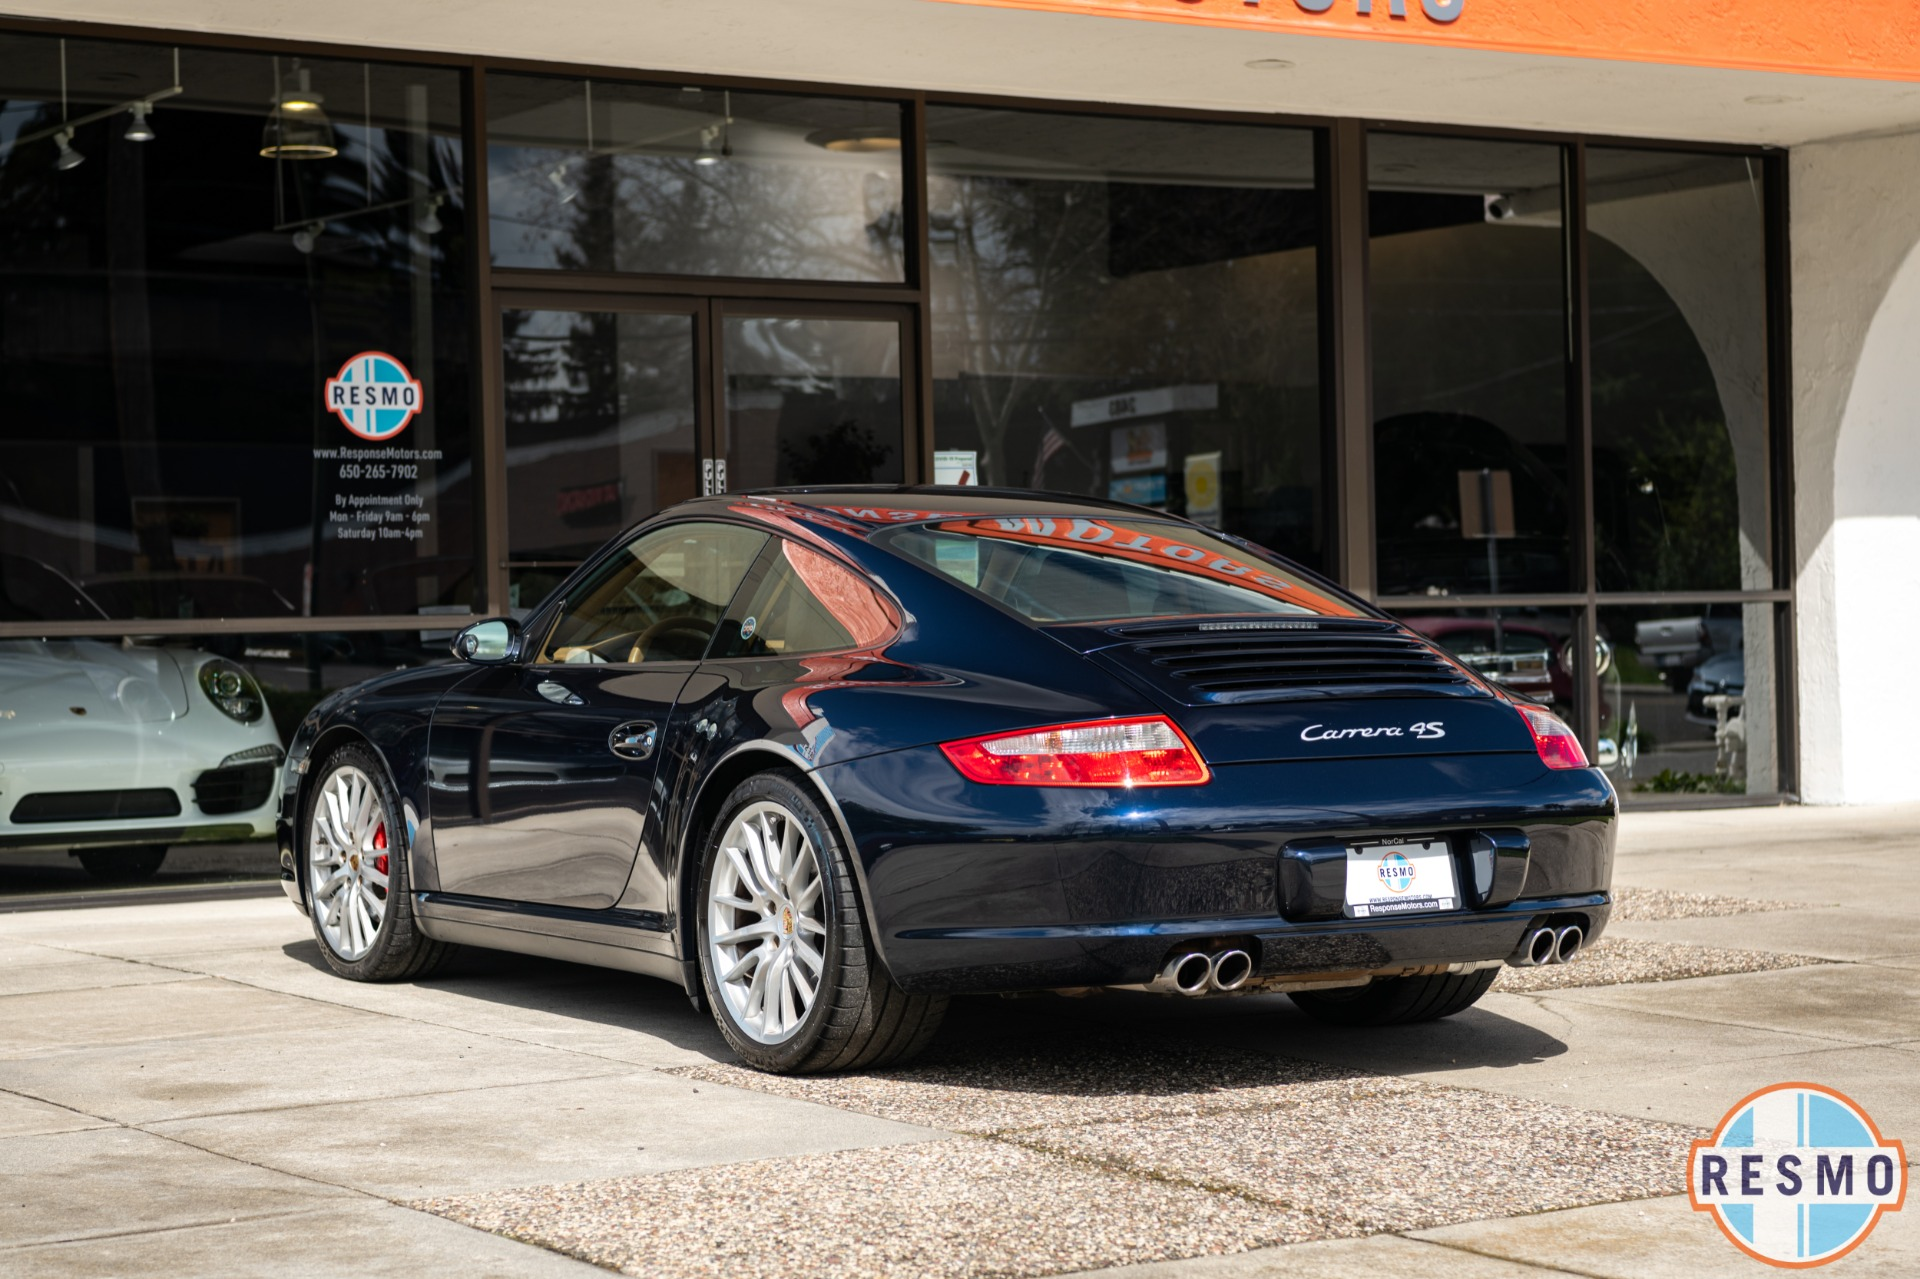 Used 2008 Porsche 911 Carrera 4S Used 2008 Porsche 911 Carrera 4S for sale $41,999 at Response Motors in Mountain View CA 8